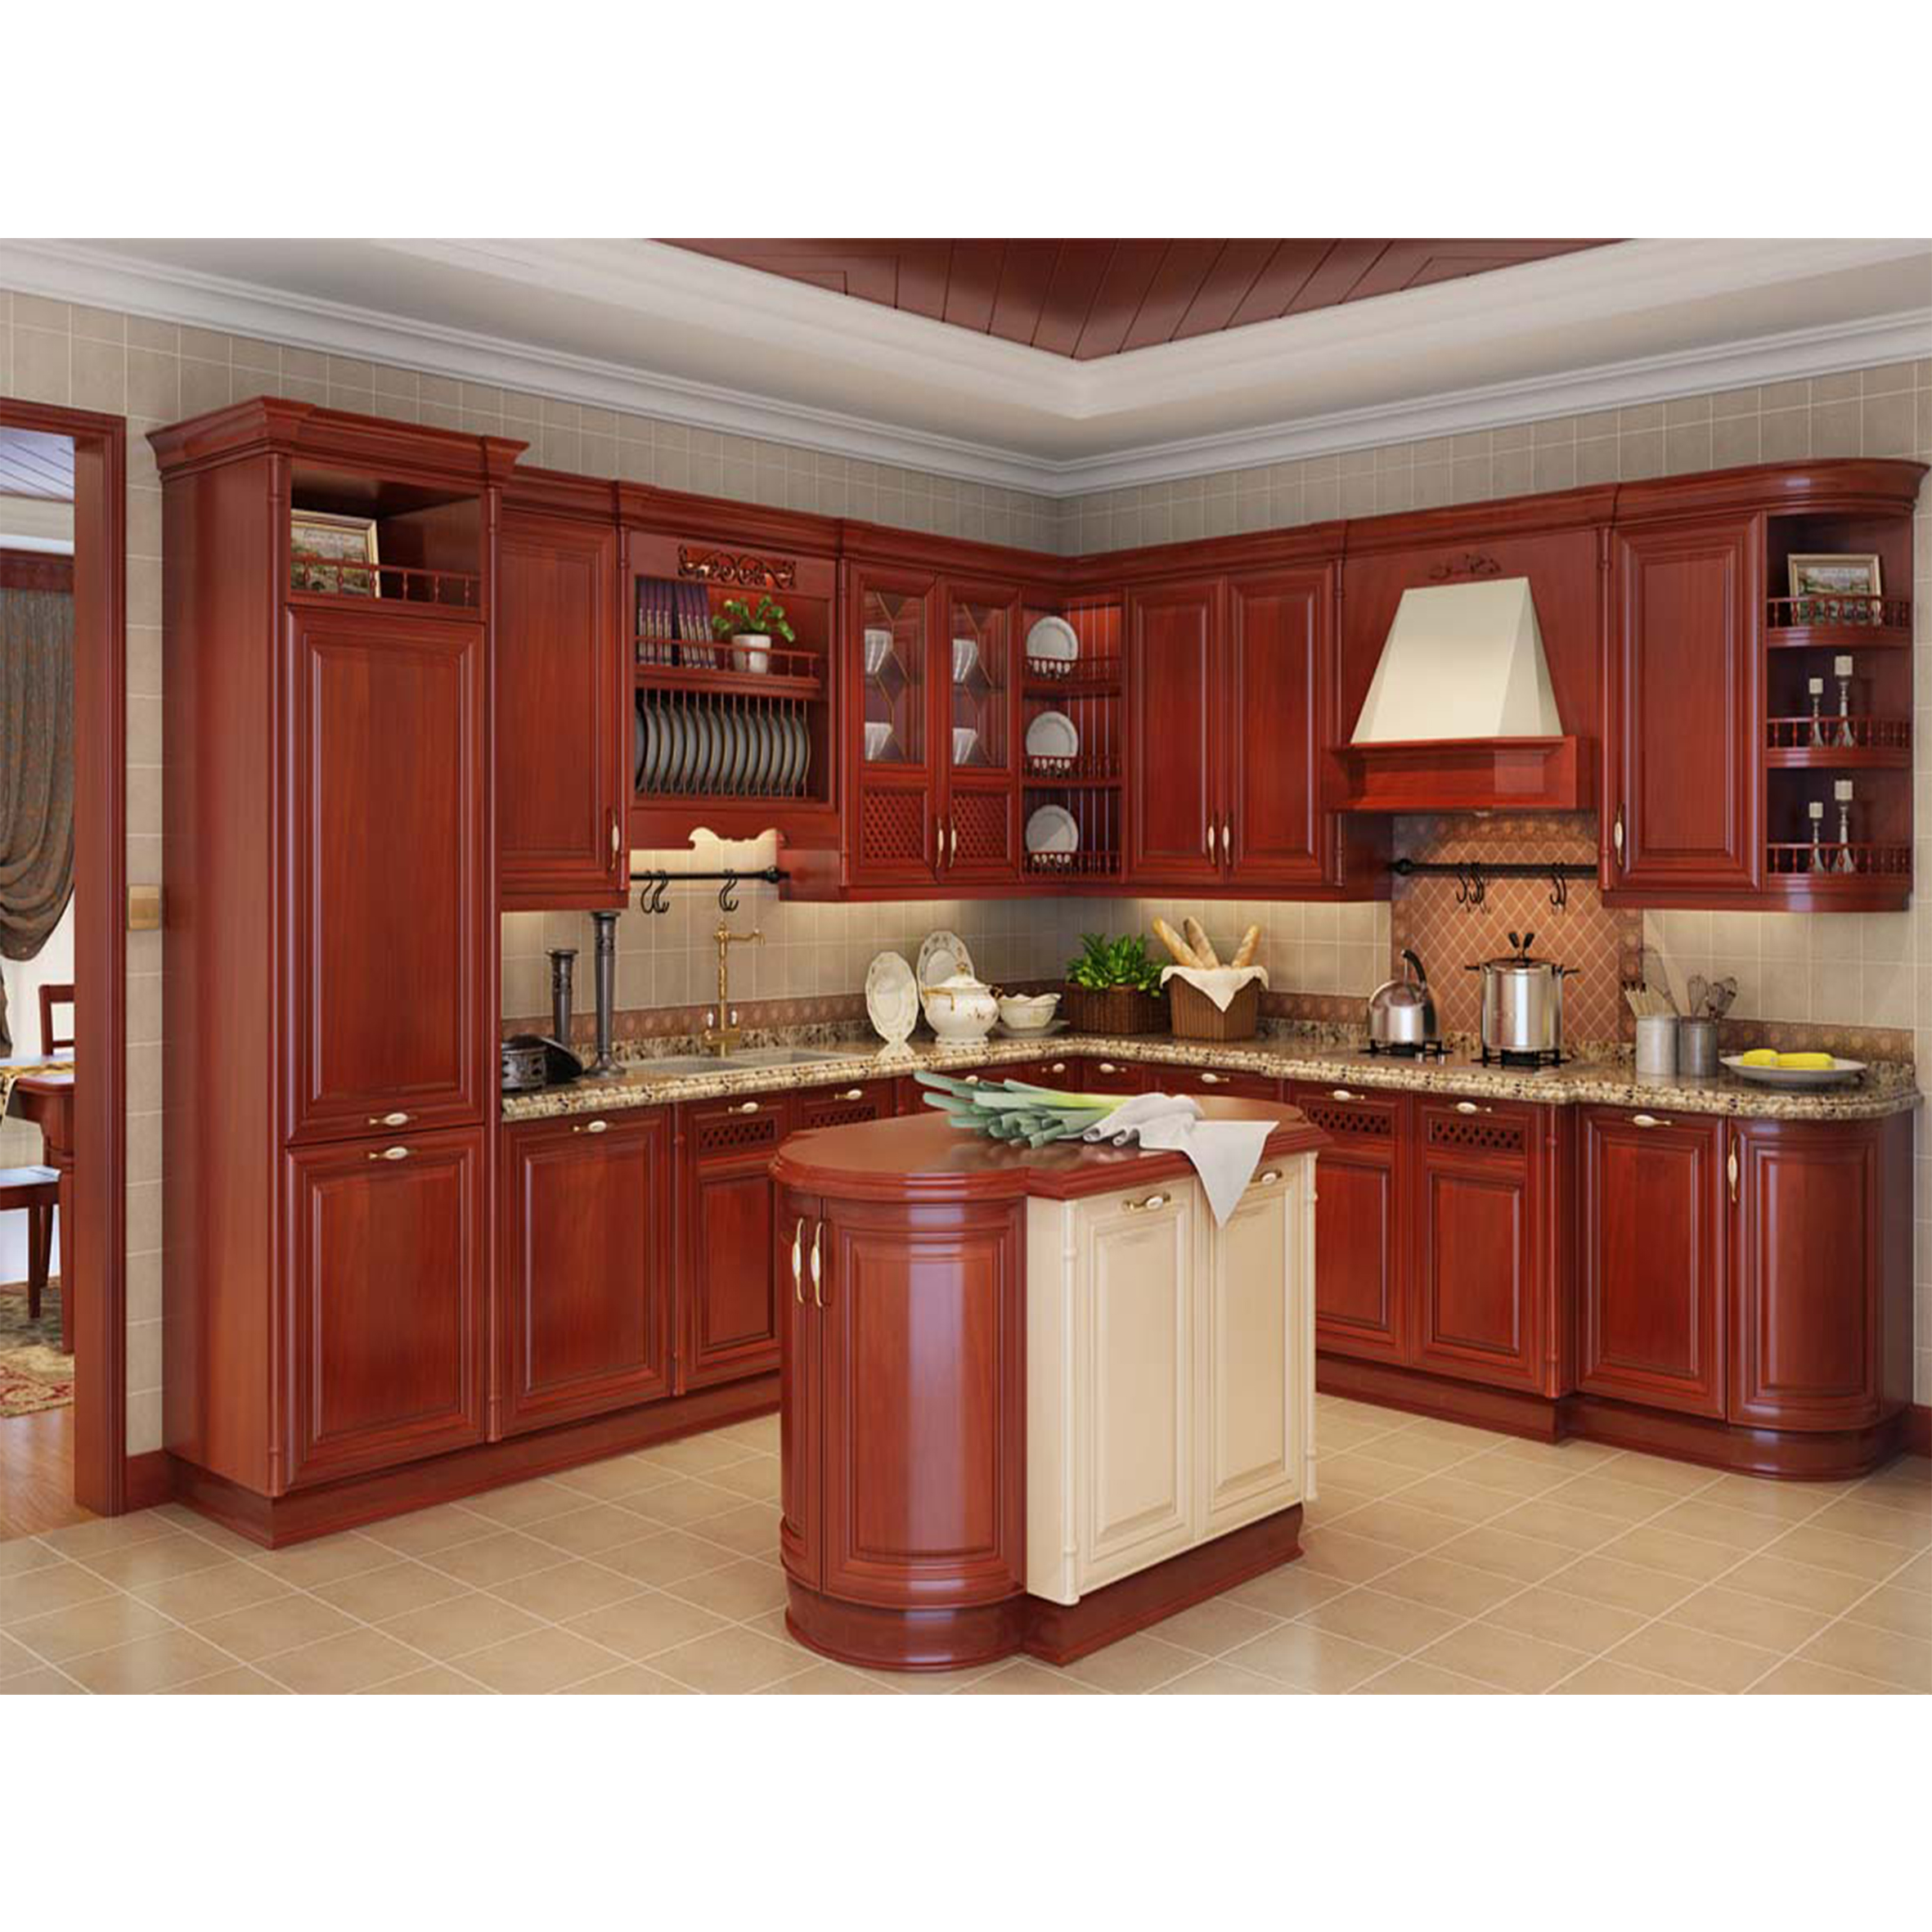 Foshan Modular Solid Wood Kitchen Cabinets Wooden Furniture Double Color Lacquerclassic Solid Wood Kitchen Cabinet Design Buy Kitchen Cabinets China Cheap Movable Kitchen Cabinets Kitchen Cabinets Design Product On Alibaba Com